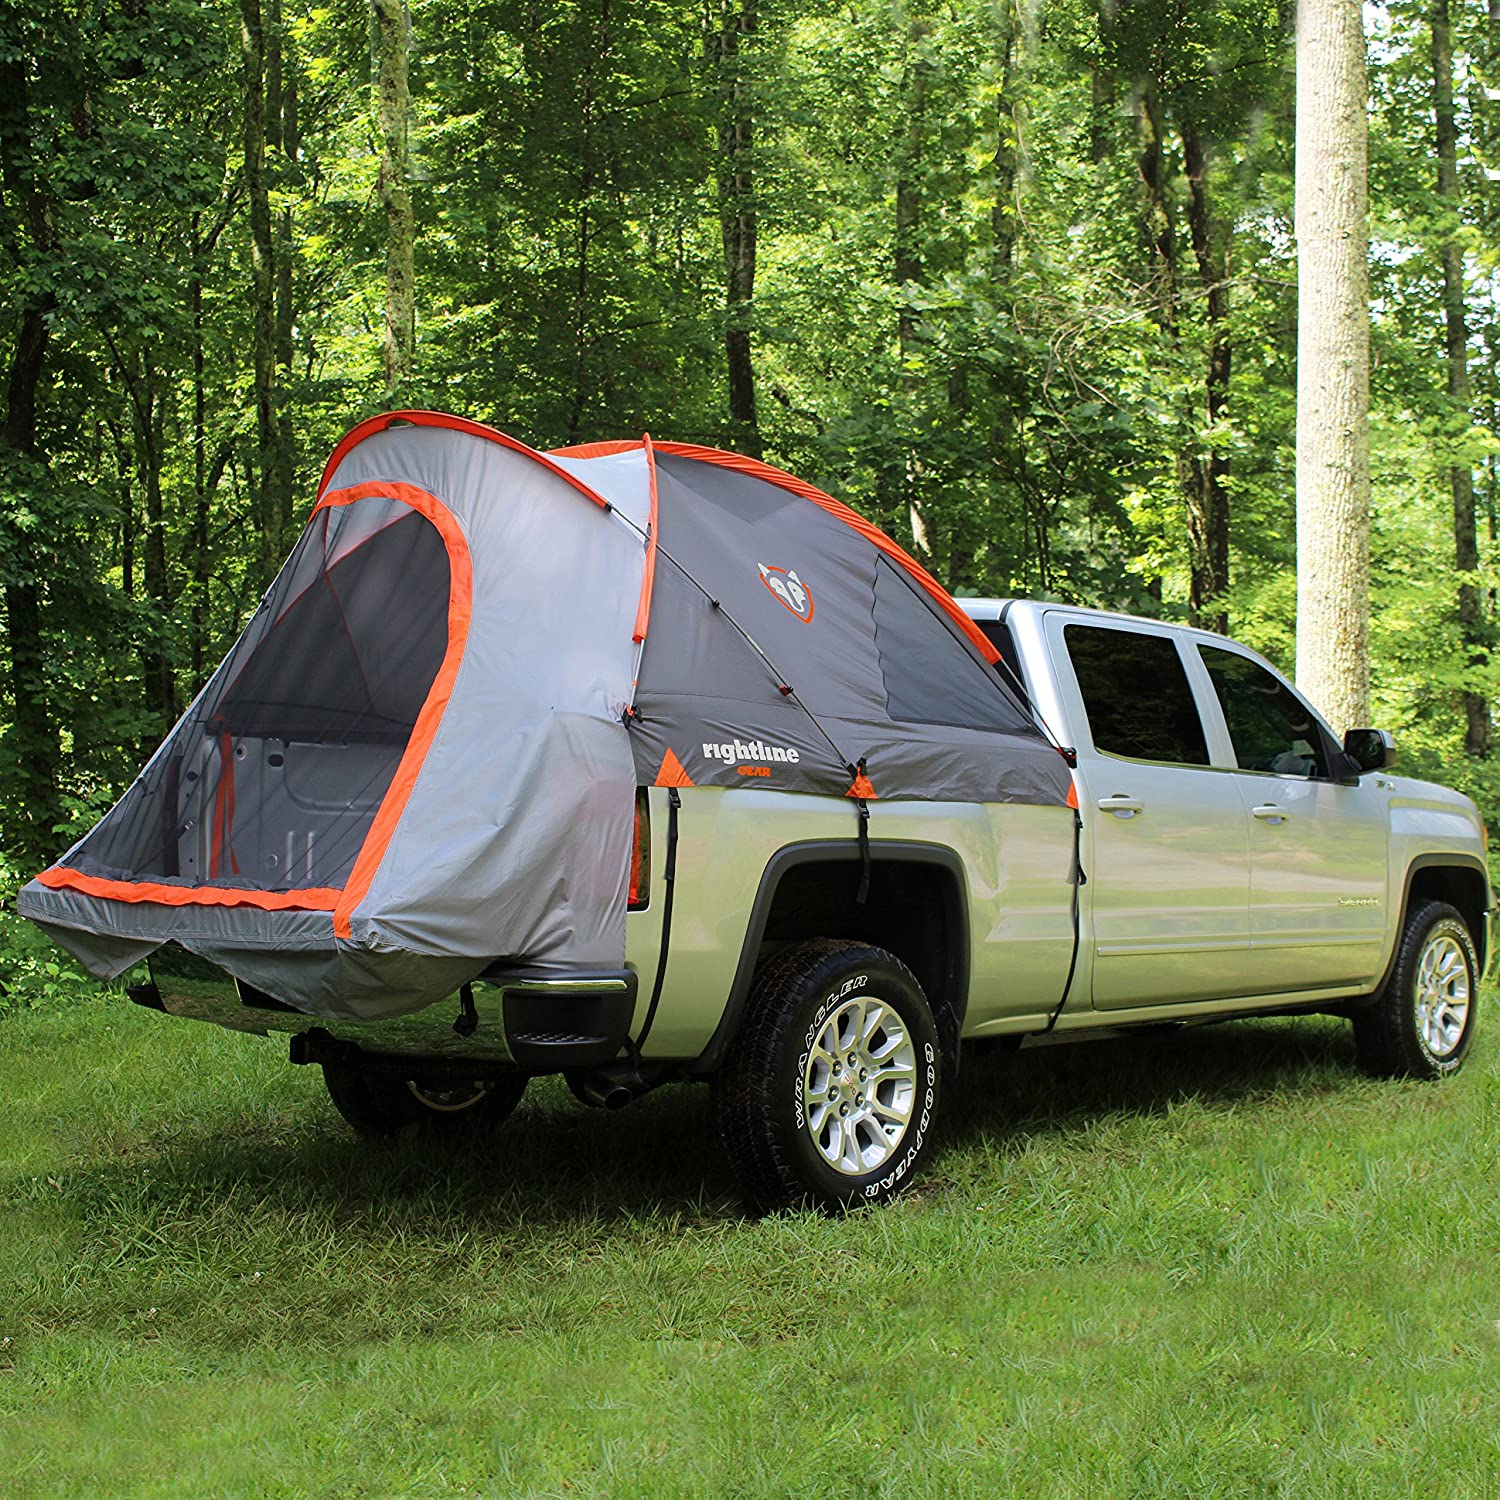 sportz outdoor truck tent compact 6 5 39 full size bed camping travel 2 person ebay. Black Bedroom Furniture Sets. Home Design Ideas